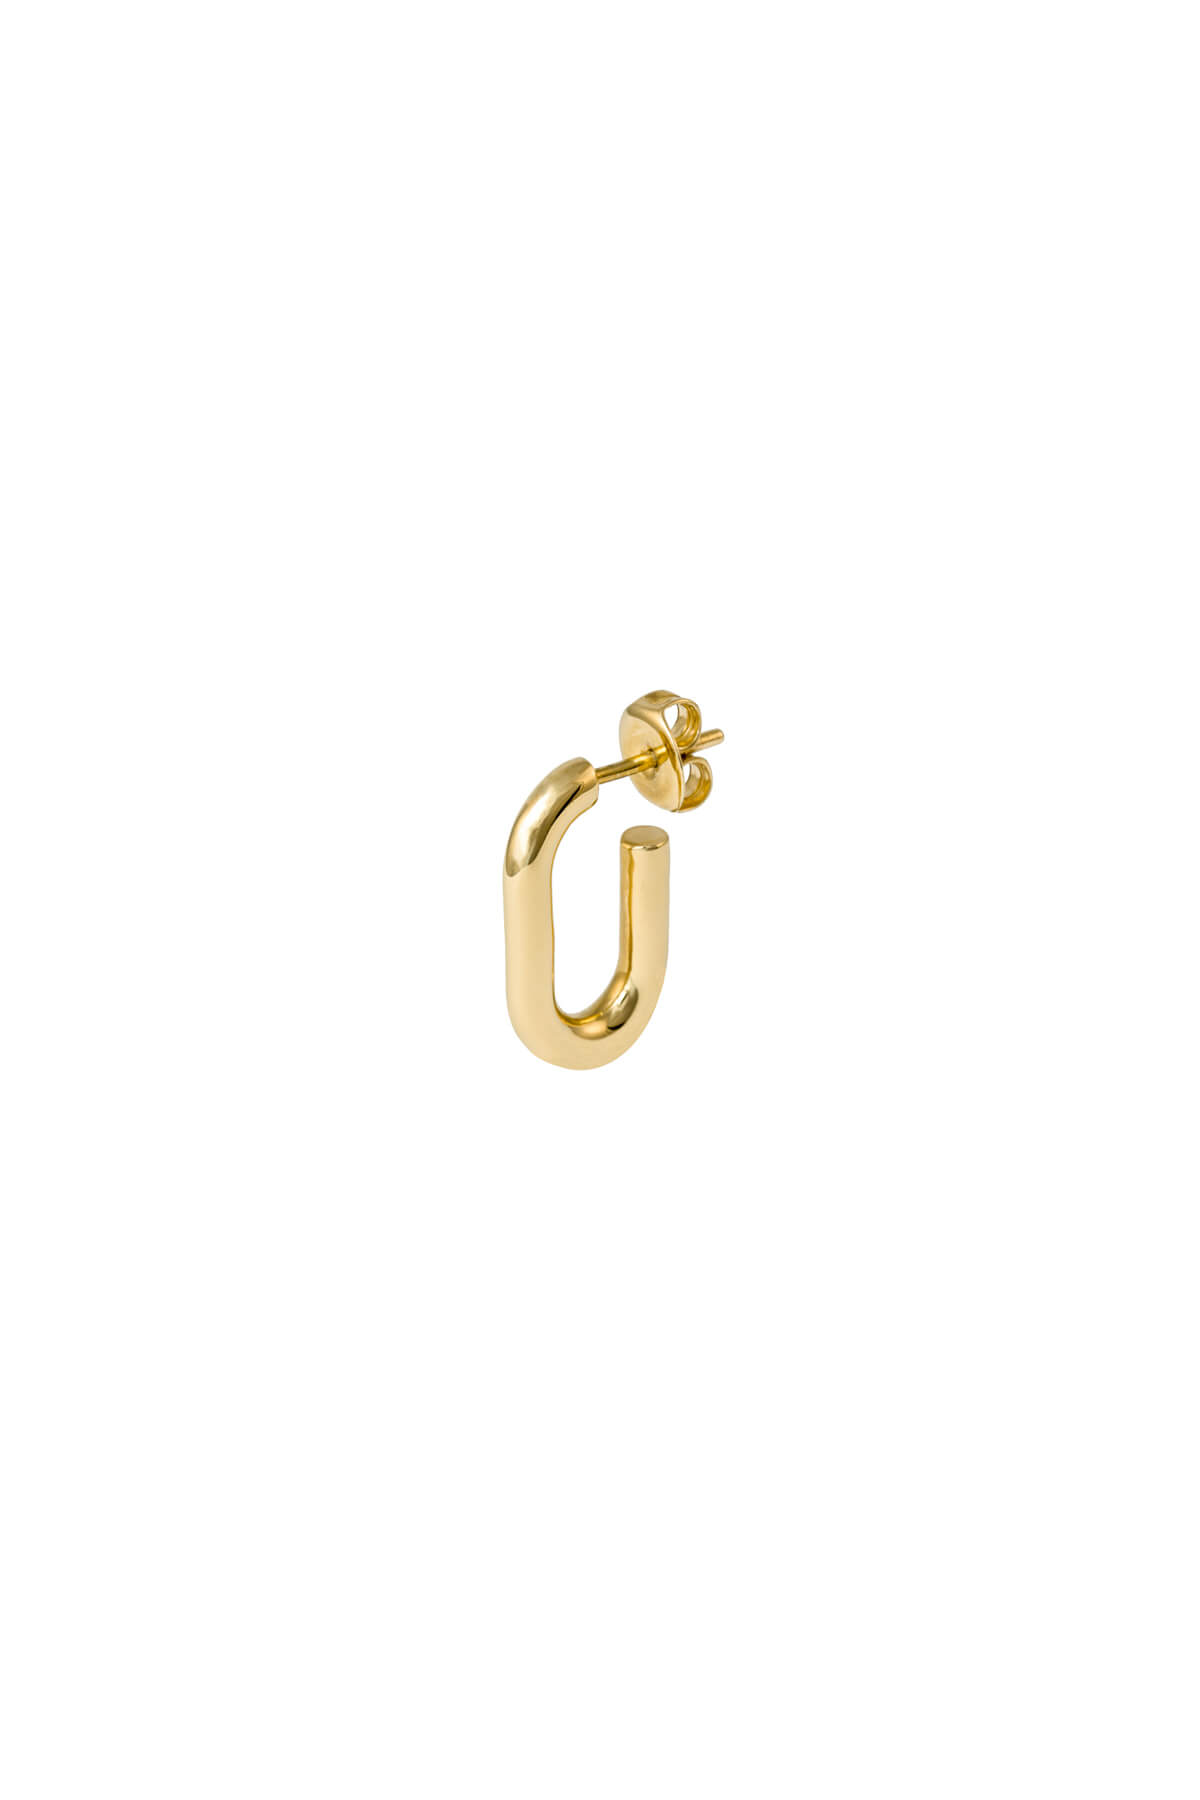 the-small-golden-link-earring-by-glenda-lopez-lateral